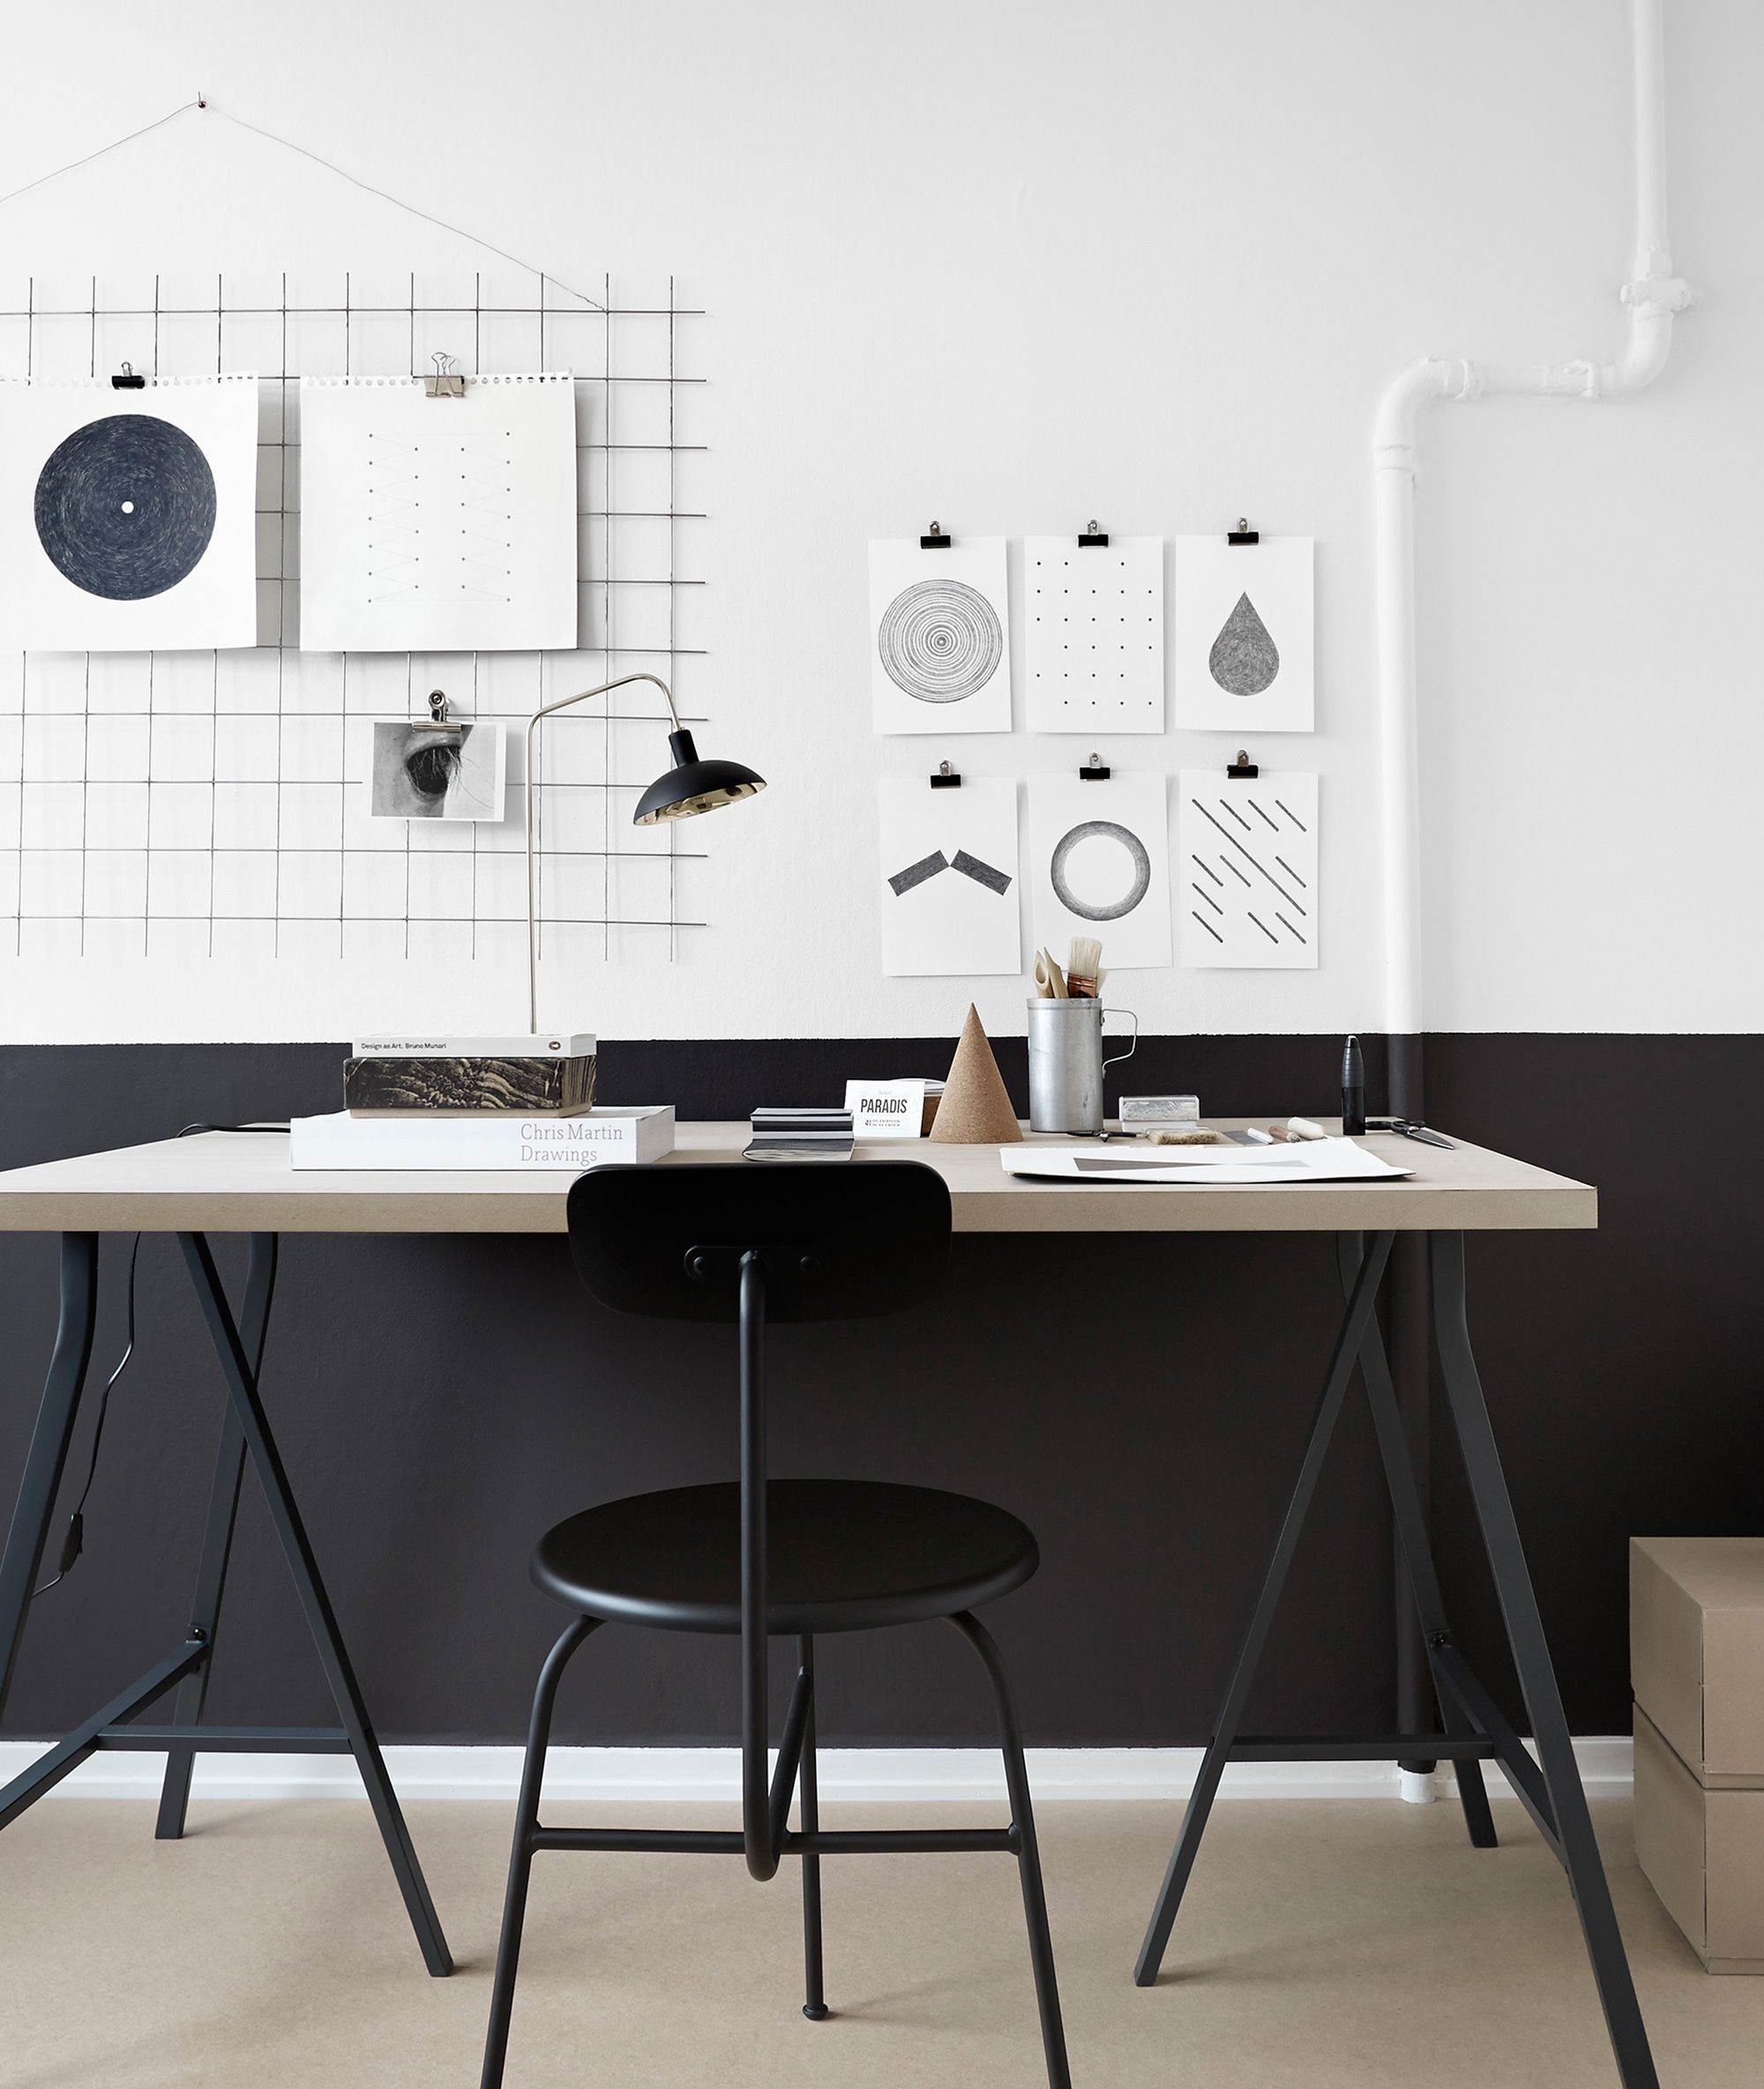 home office picture by tina hellberg h o m e o f f i c e pinterest einrichtung. Black Bedroom Furniture Sets. Home Design Ideas